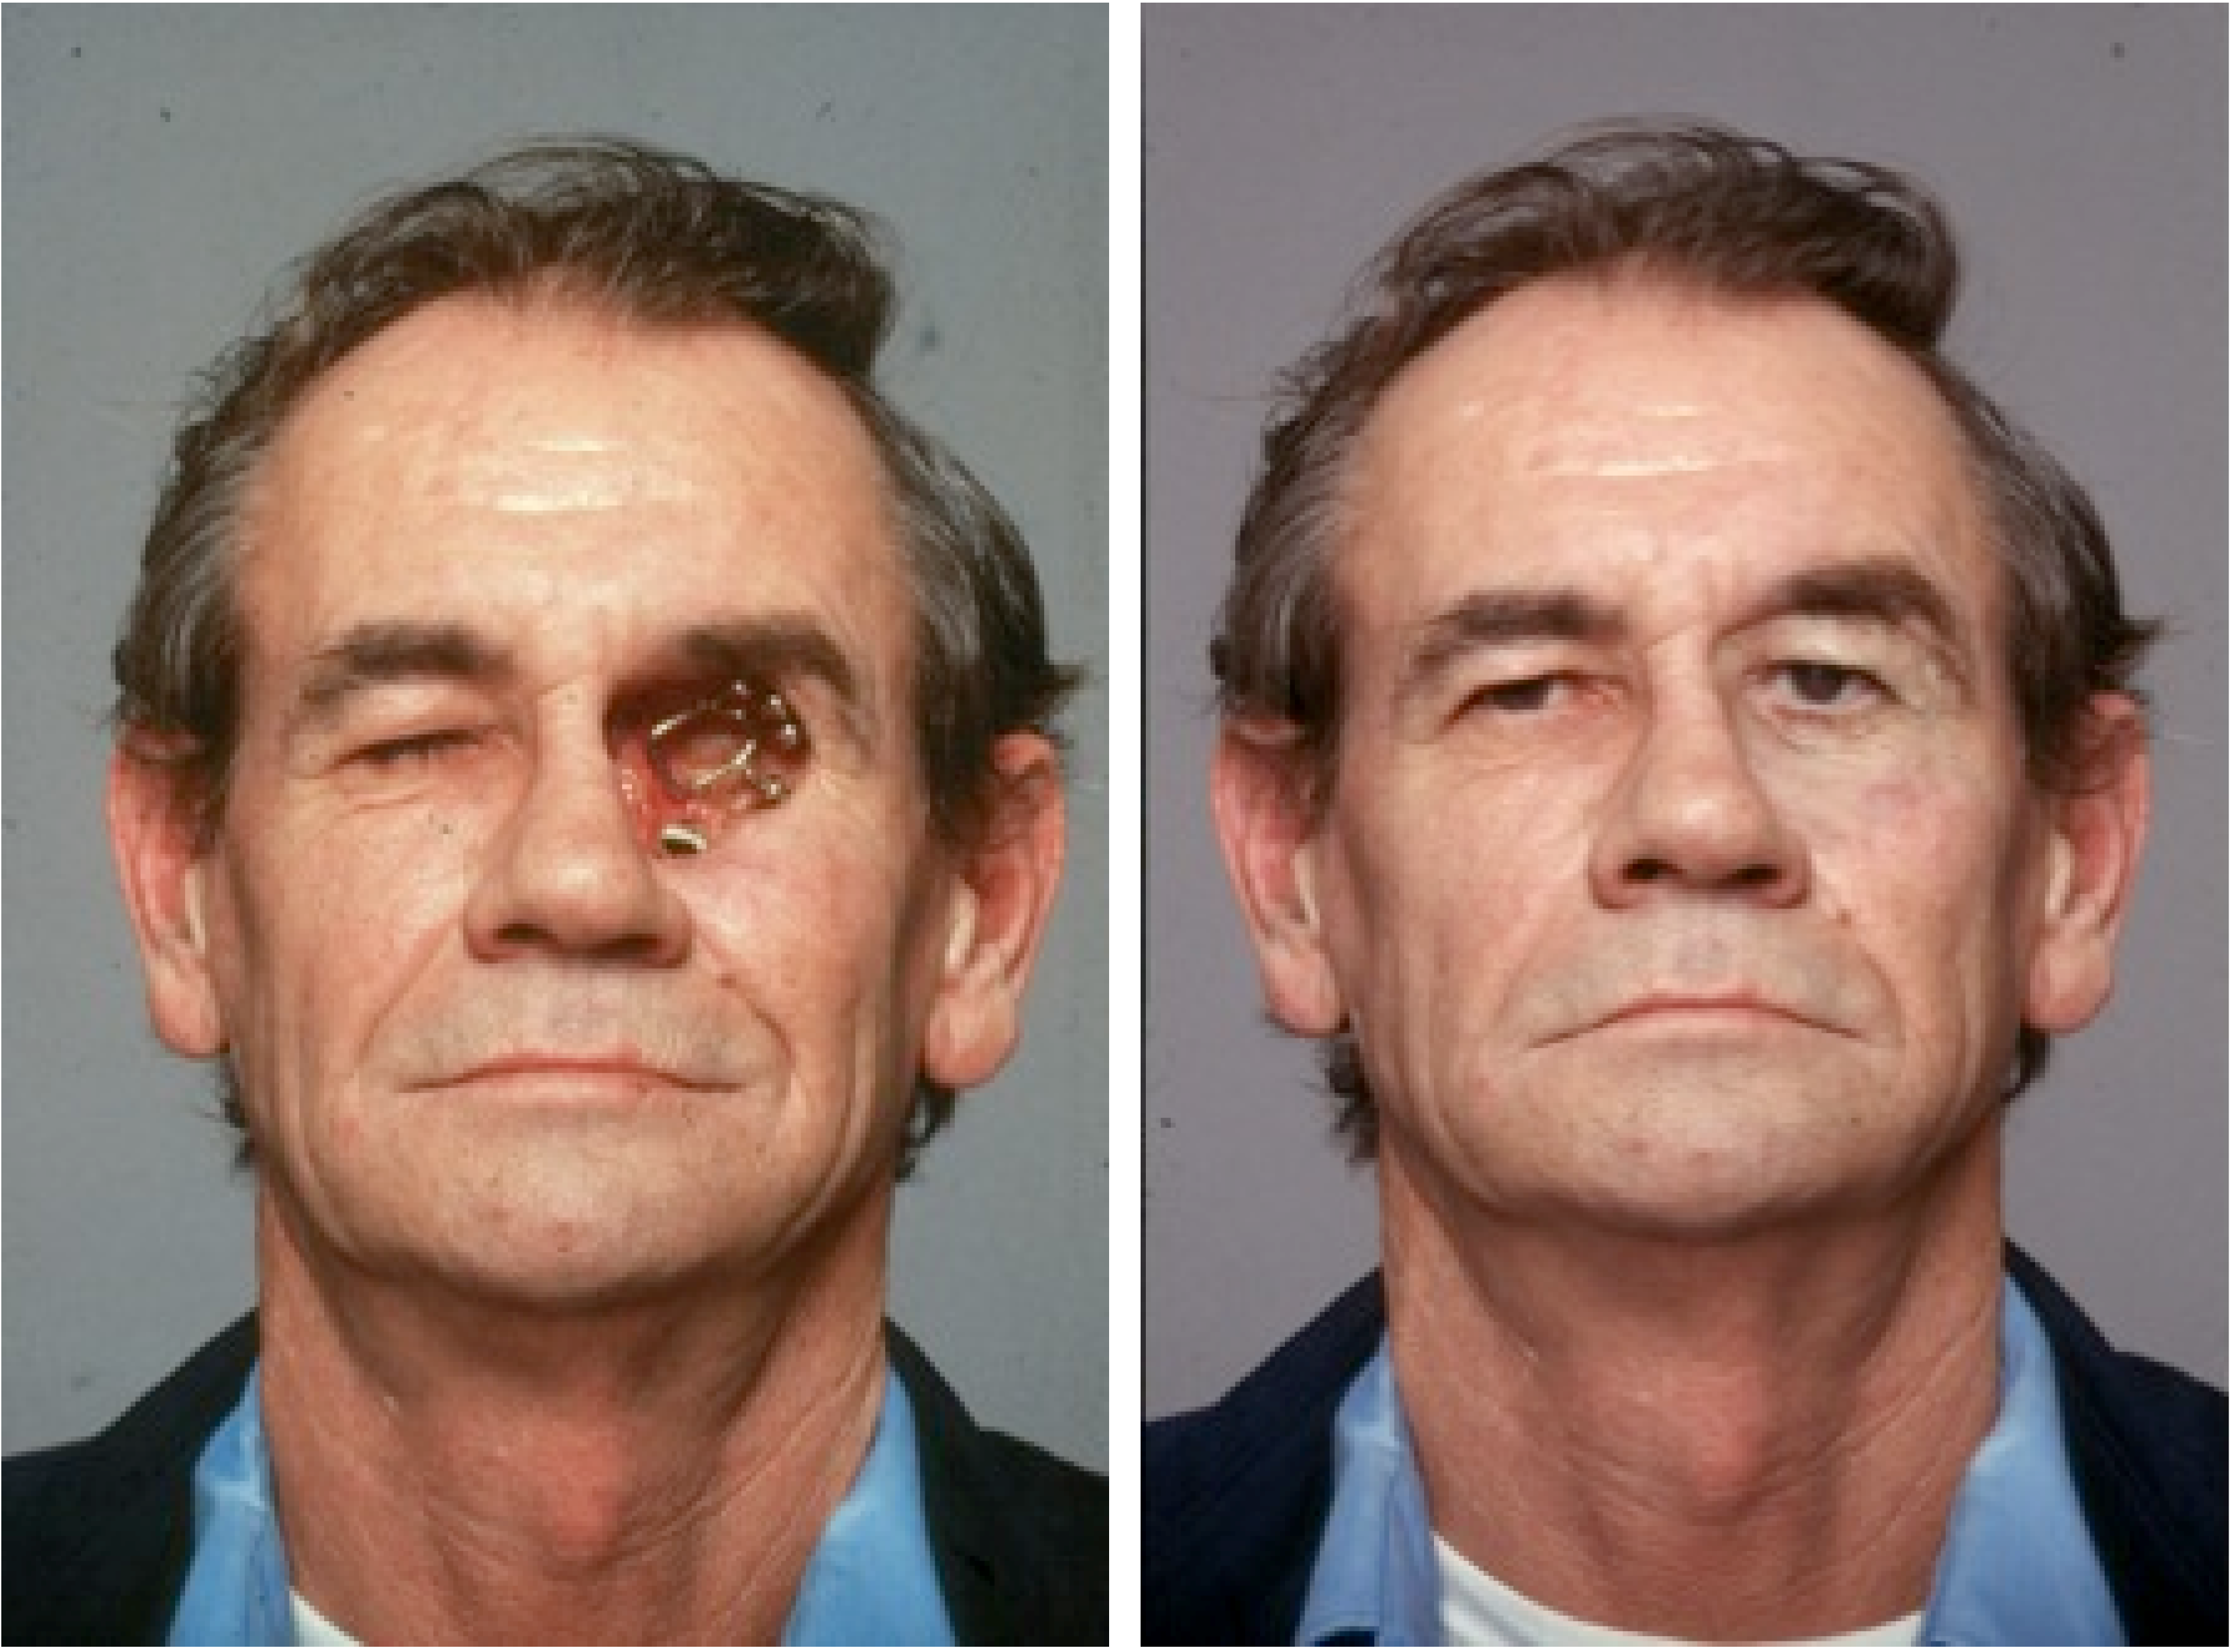 Reconstruction of the Face Following Cancer Ablation